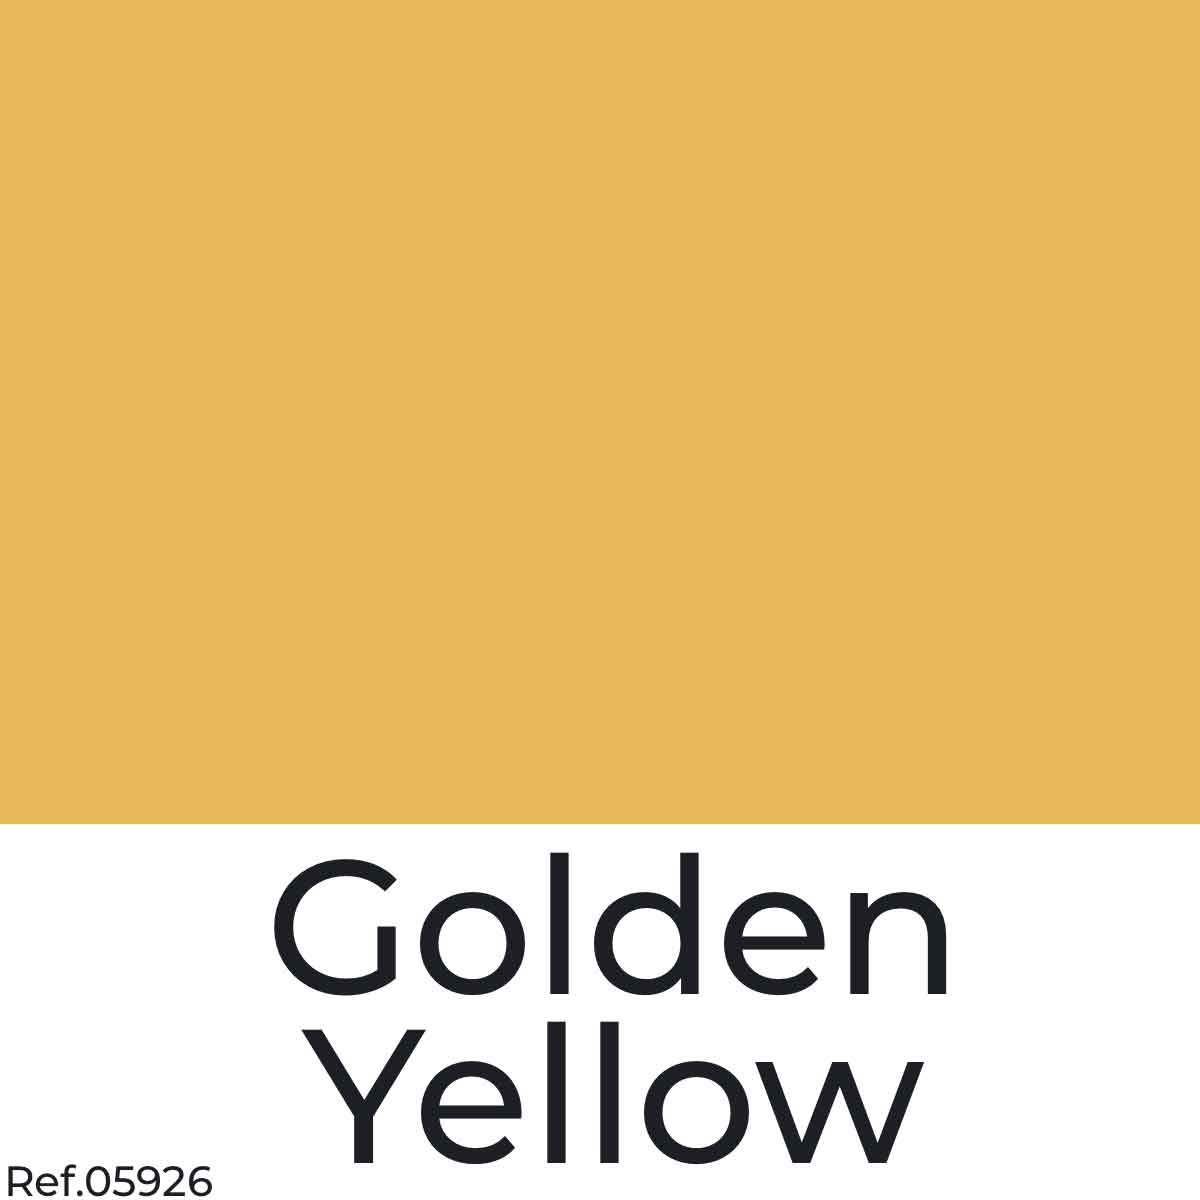 Golden Yellow Color Poster Paper from najamonline.com Abu Dhabi - UAE